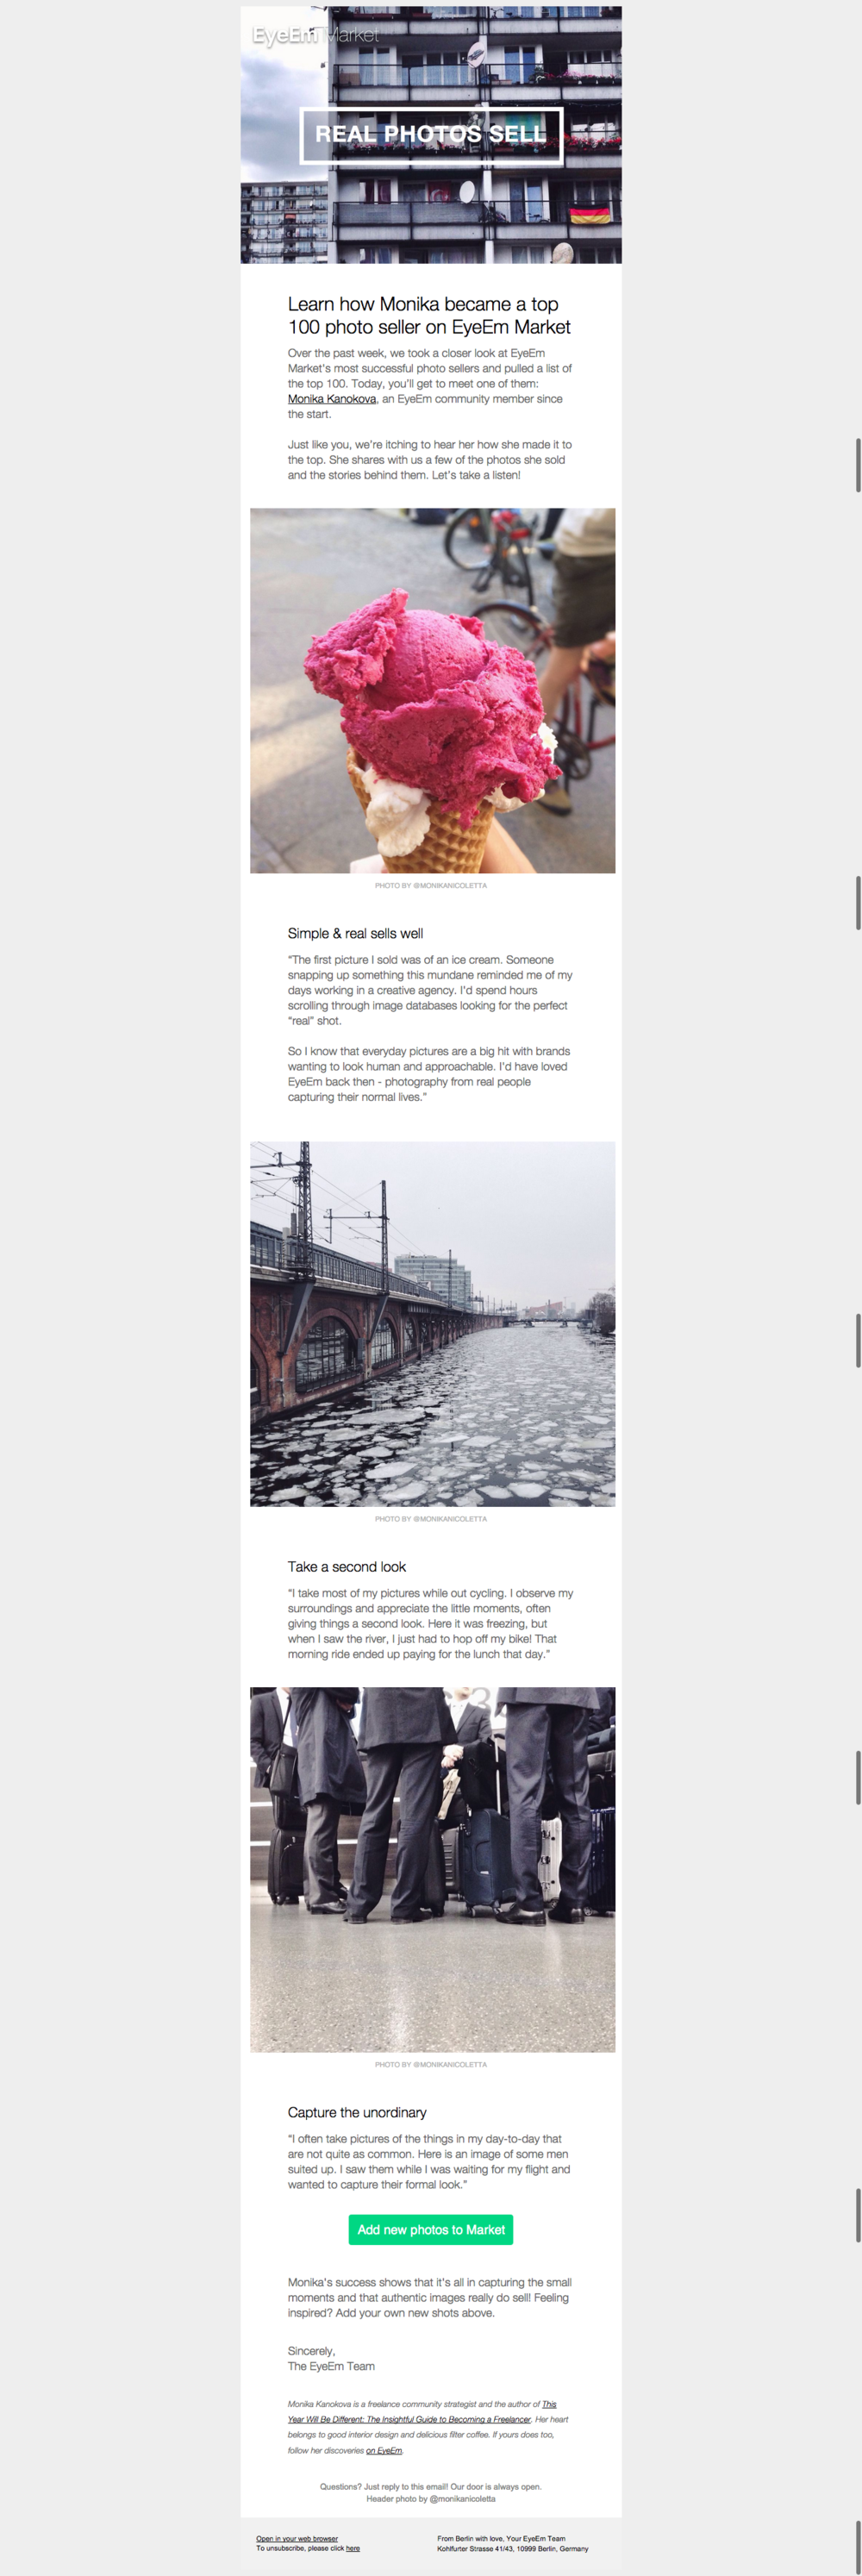 eyeem newsletter